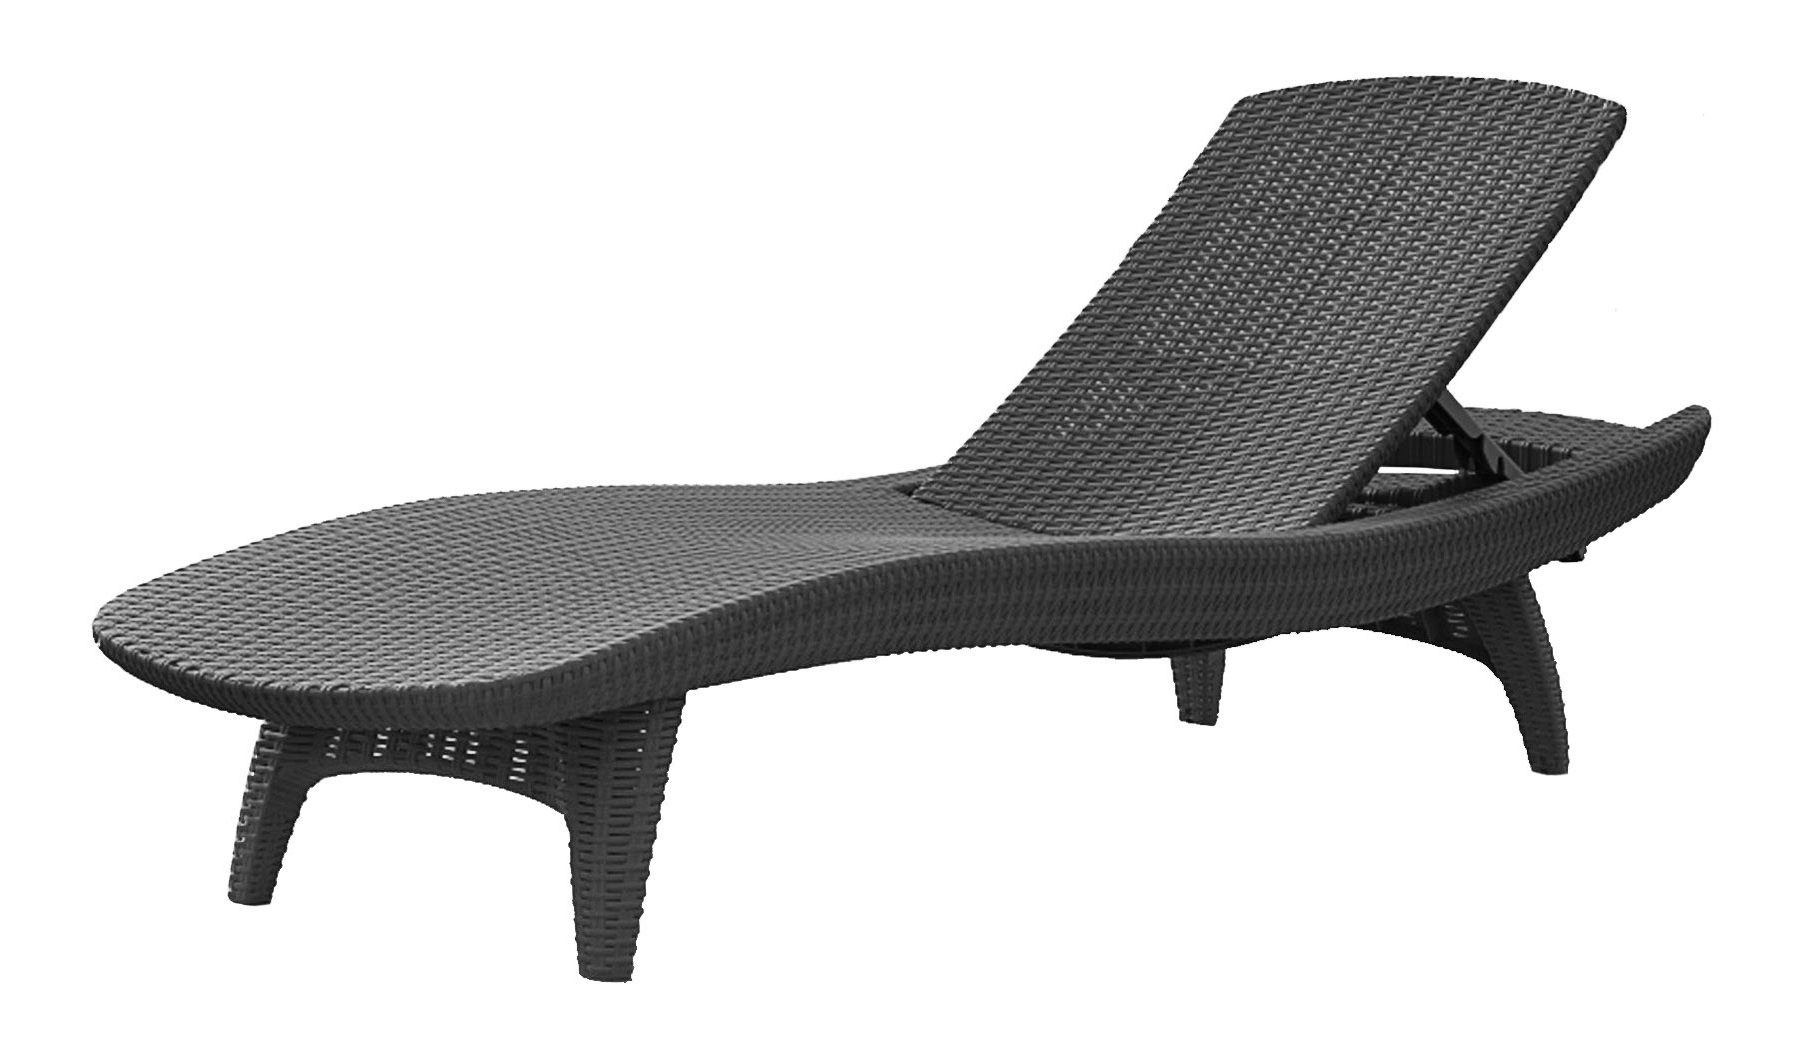 Keter Pacific Chaise Sun Lounger And Side Table Set, Charcoal for Favorite Keter Chaise Lounges